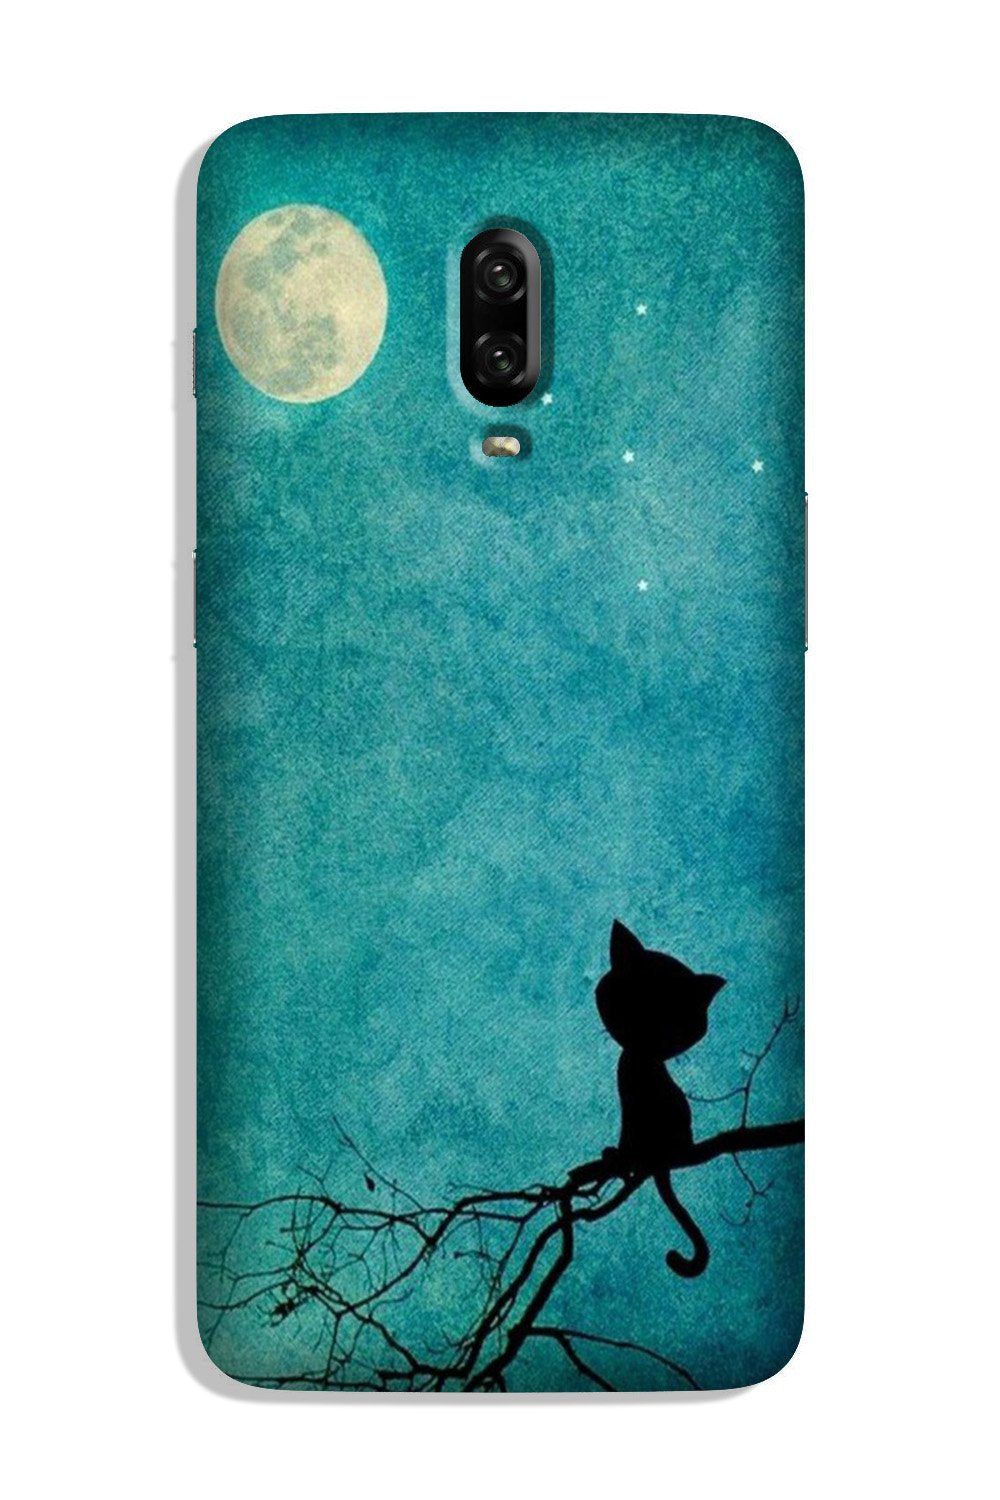 Moon cat Case for OnePlus 6T